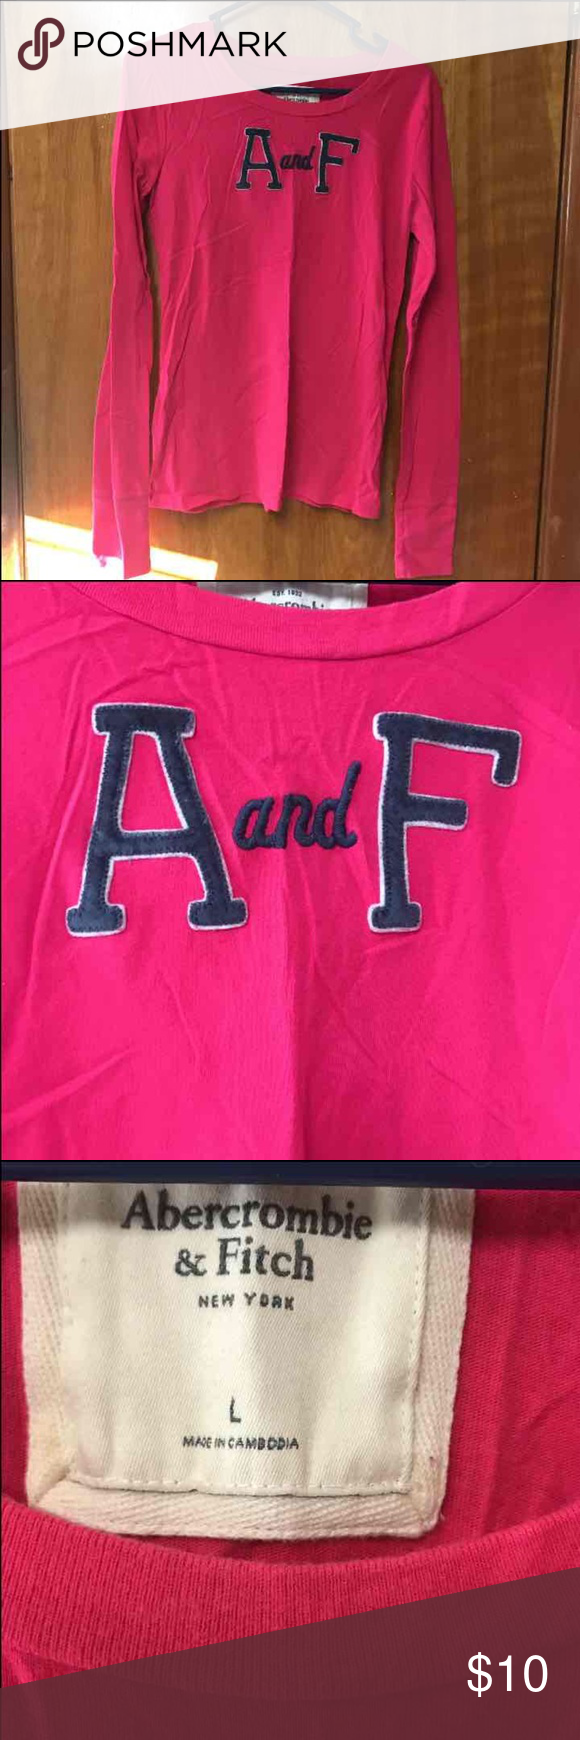 Abercrombie & Fitch pink long sleeve shirt. Large Abercrombie & Fitch pink long sleeve shirt. Size lg. Abercrombie & Fitch Tops Tees - Long Sleeve